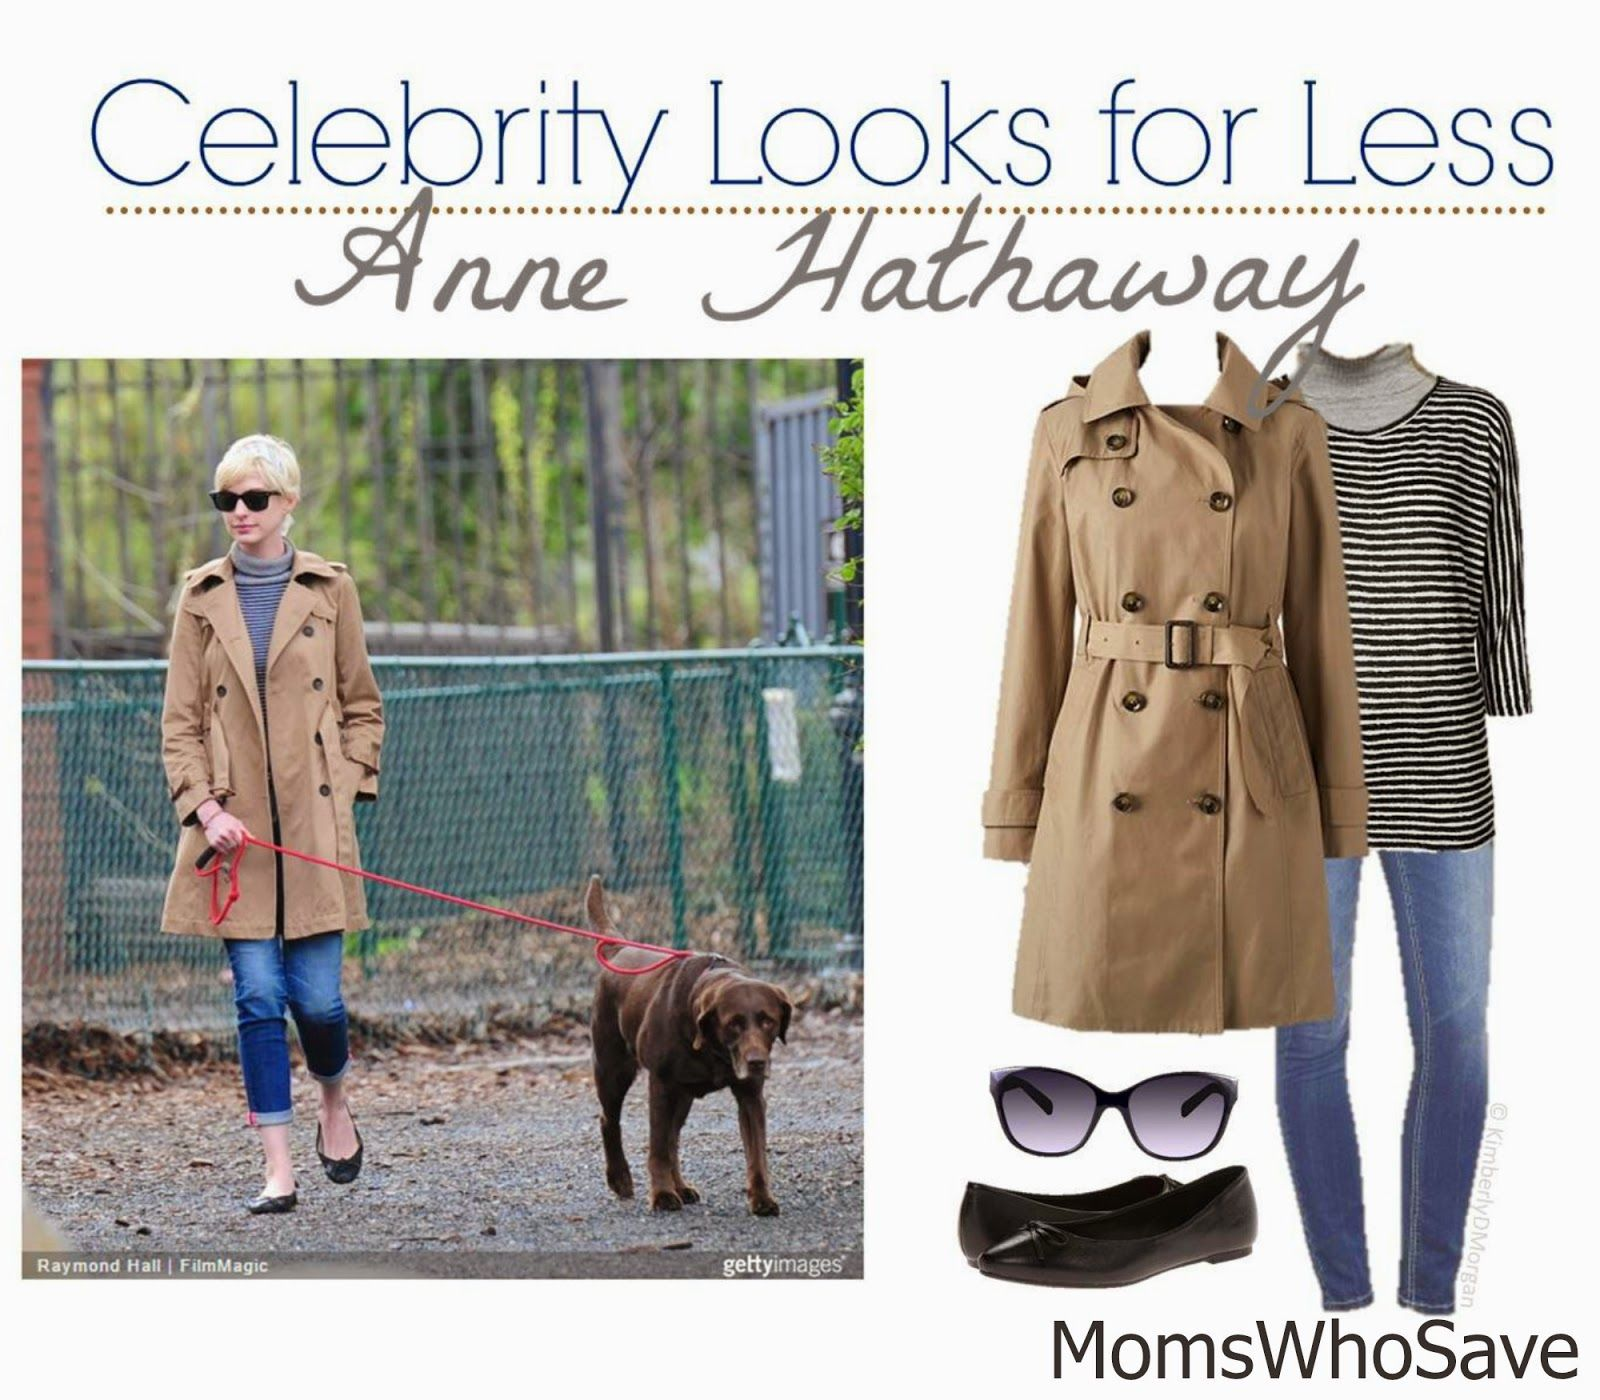 MomsWhoSave | Celebrity Look for Less -- Anne Hathaway  #deals #fashion #style #frugal